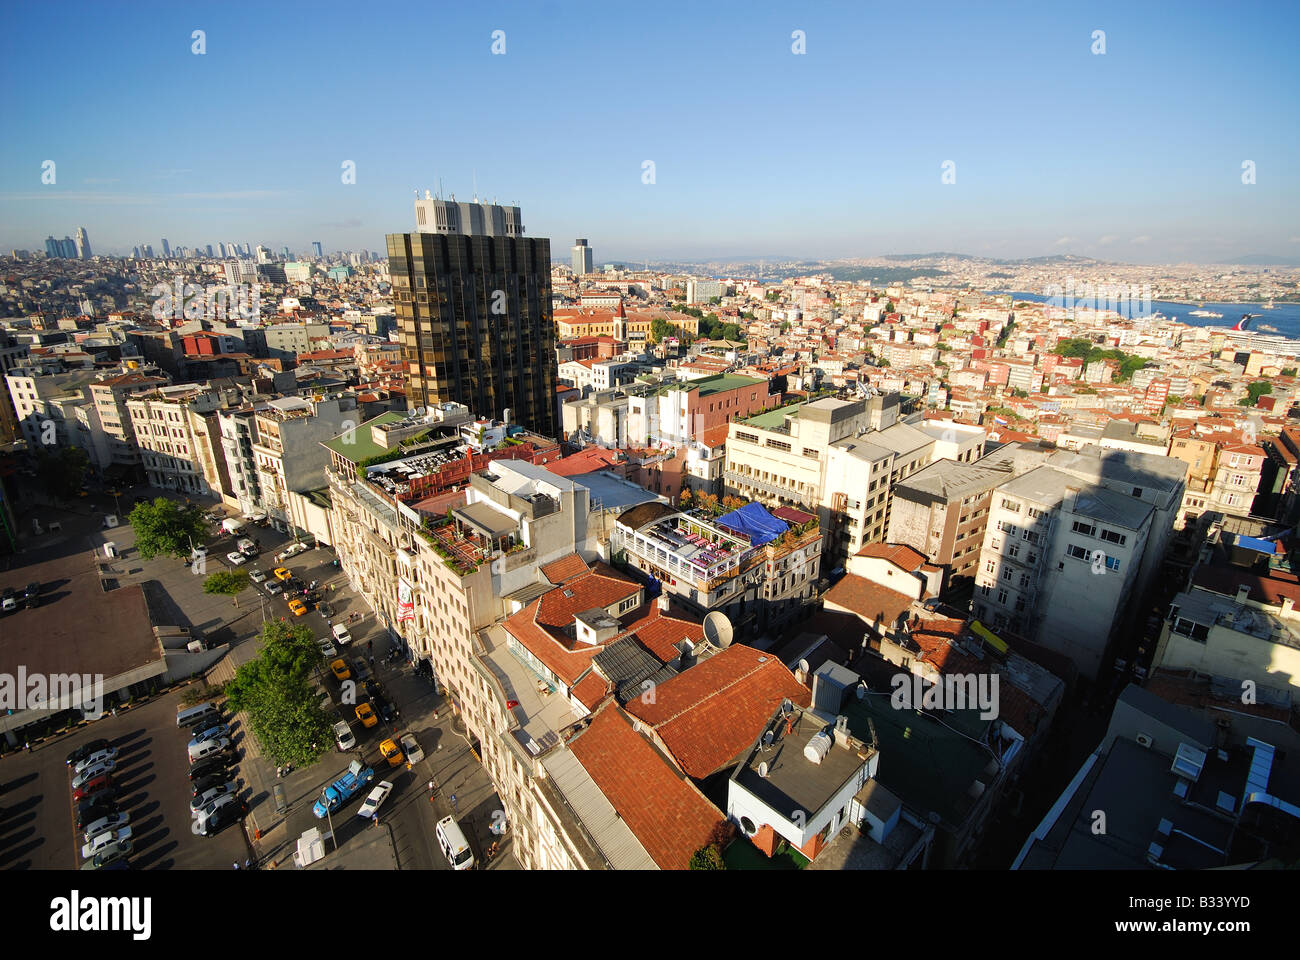 ISTANBUL, TURKEY. A bird's eye view over the Pera district of Beyoglu, with the Bosphorus in the distance. 2008. - Stock Image